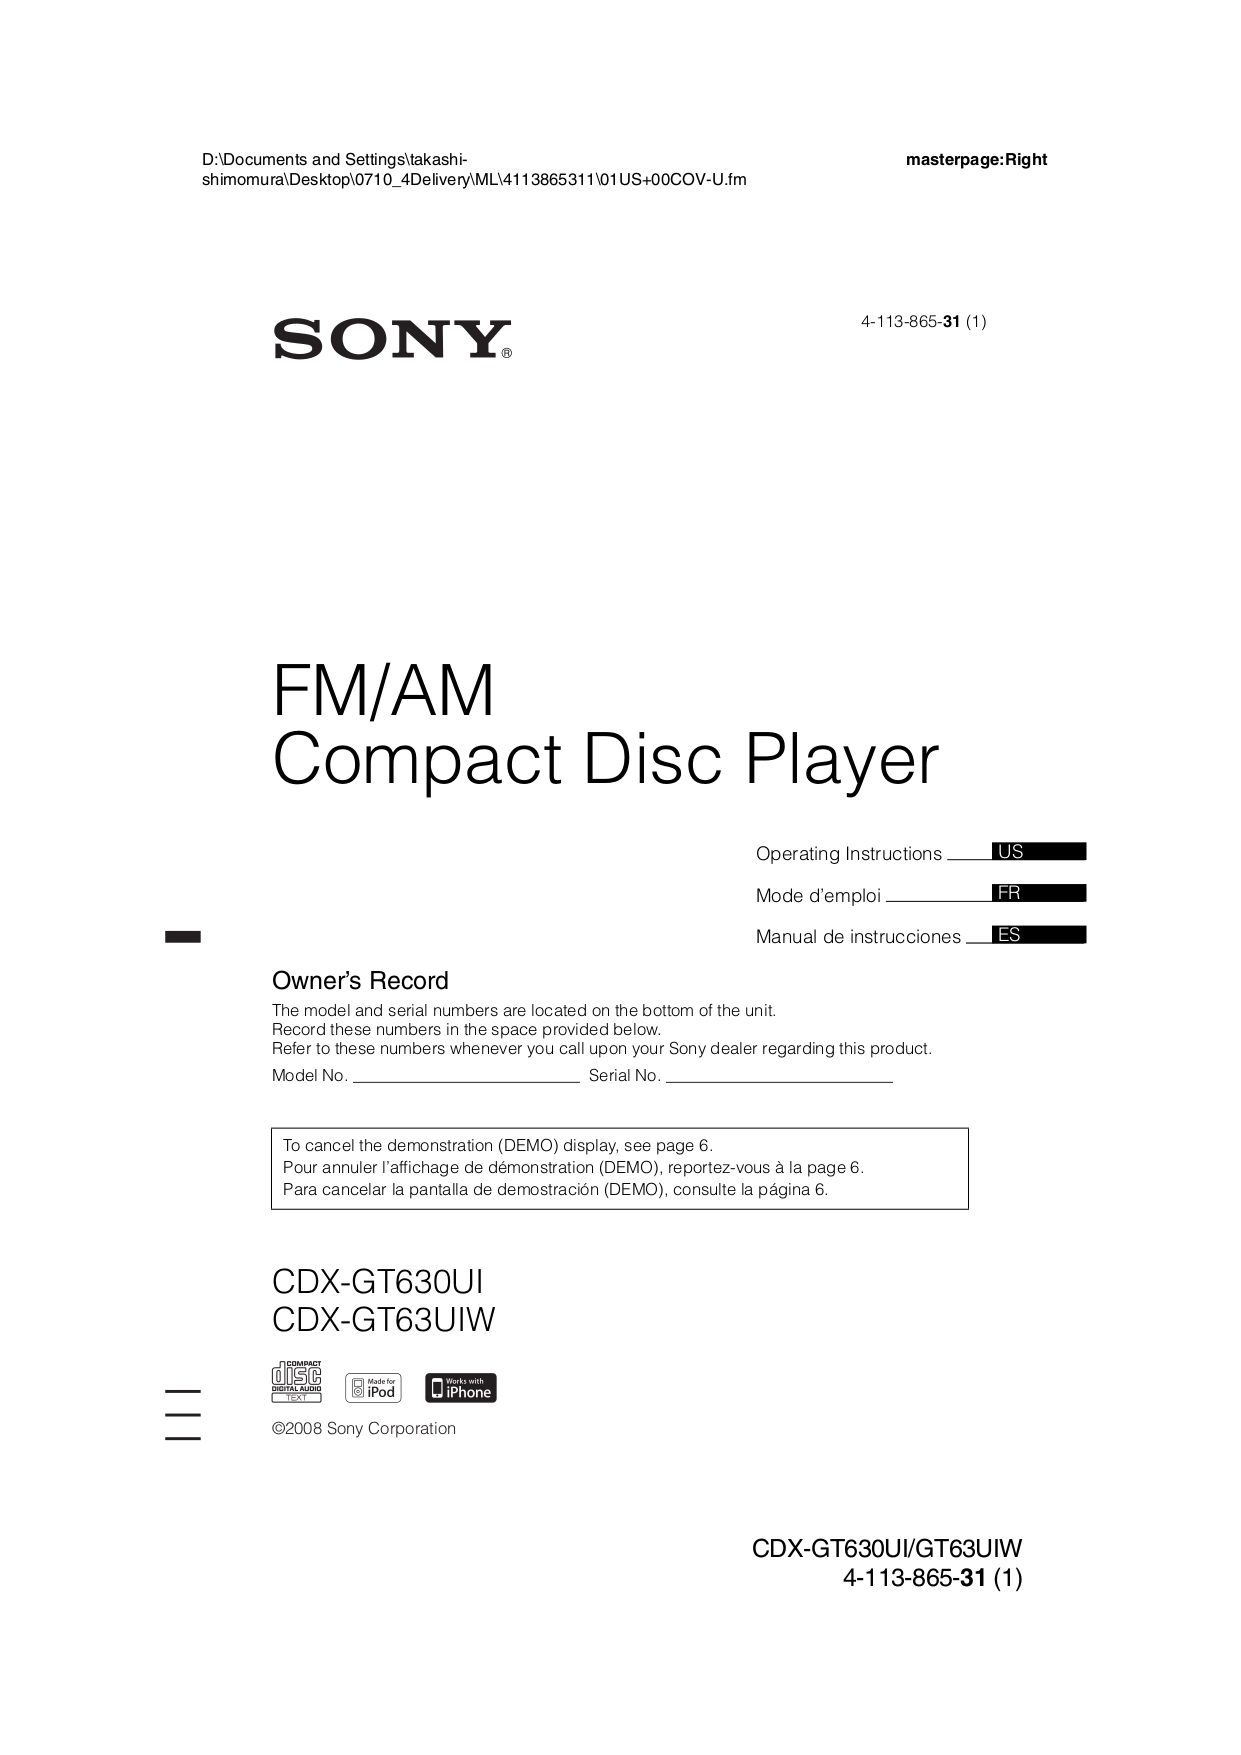 Stupendous Download Free Pdf For Sony Xplod Cdx Gt630Ui Car Receiver Manual Wiring Cloud Xortanetembamohammedshrineorg